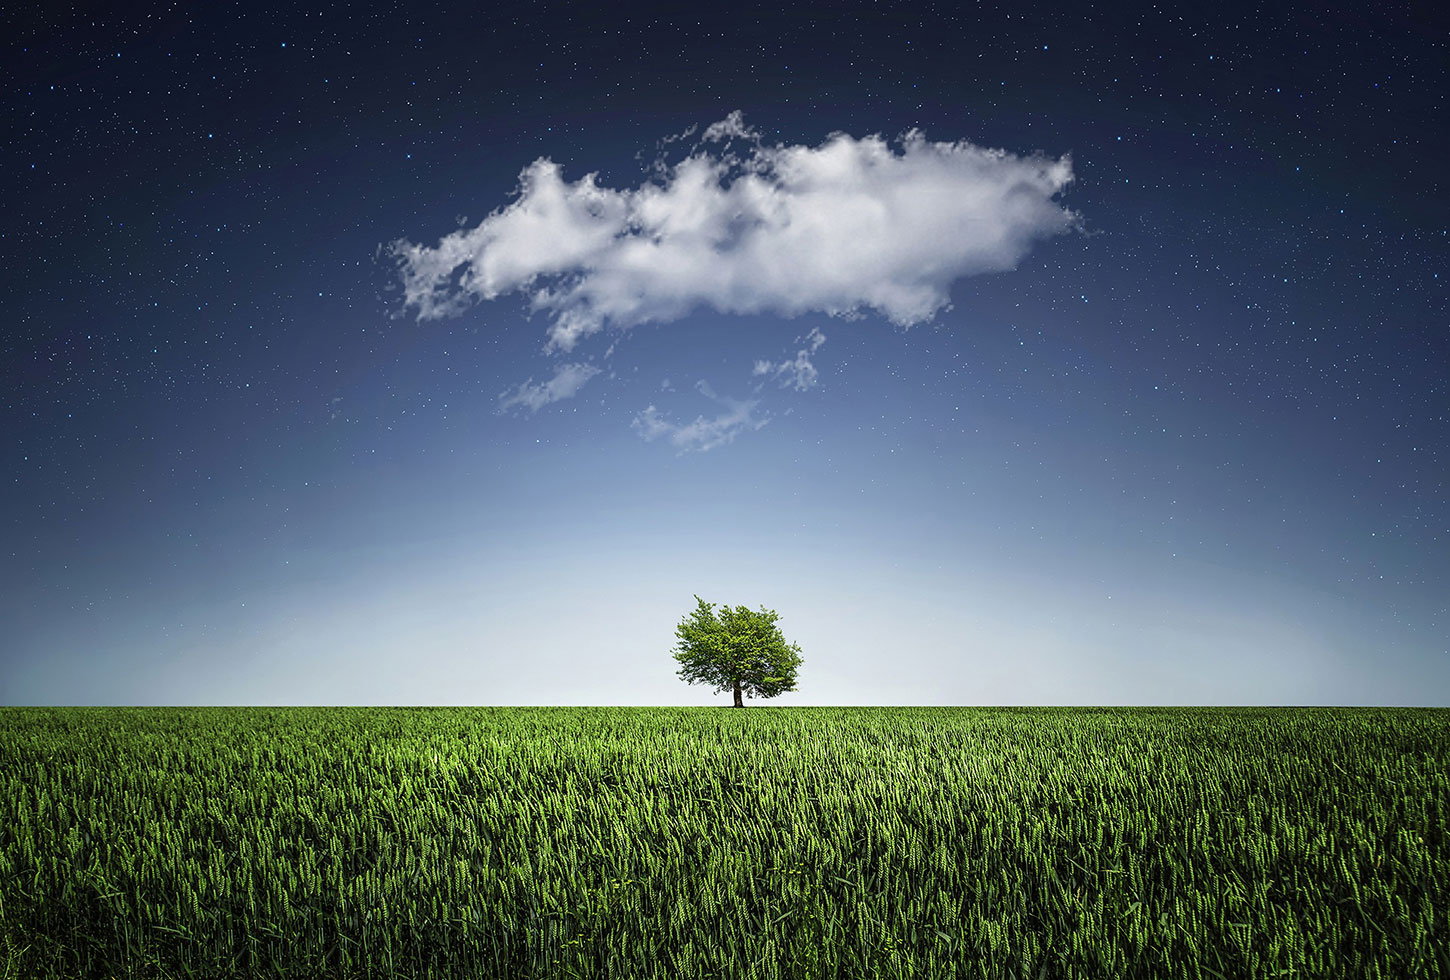 Single tree on flat landscape with cloud and night sky